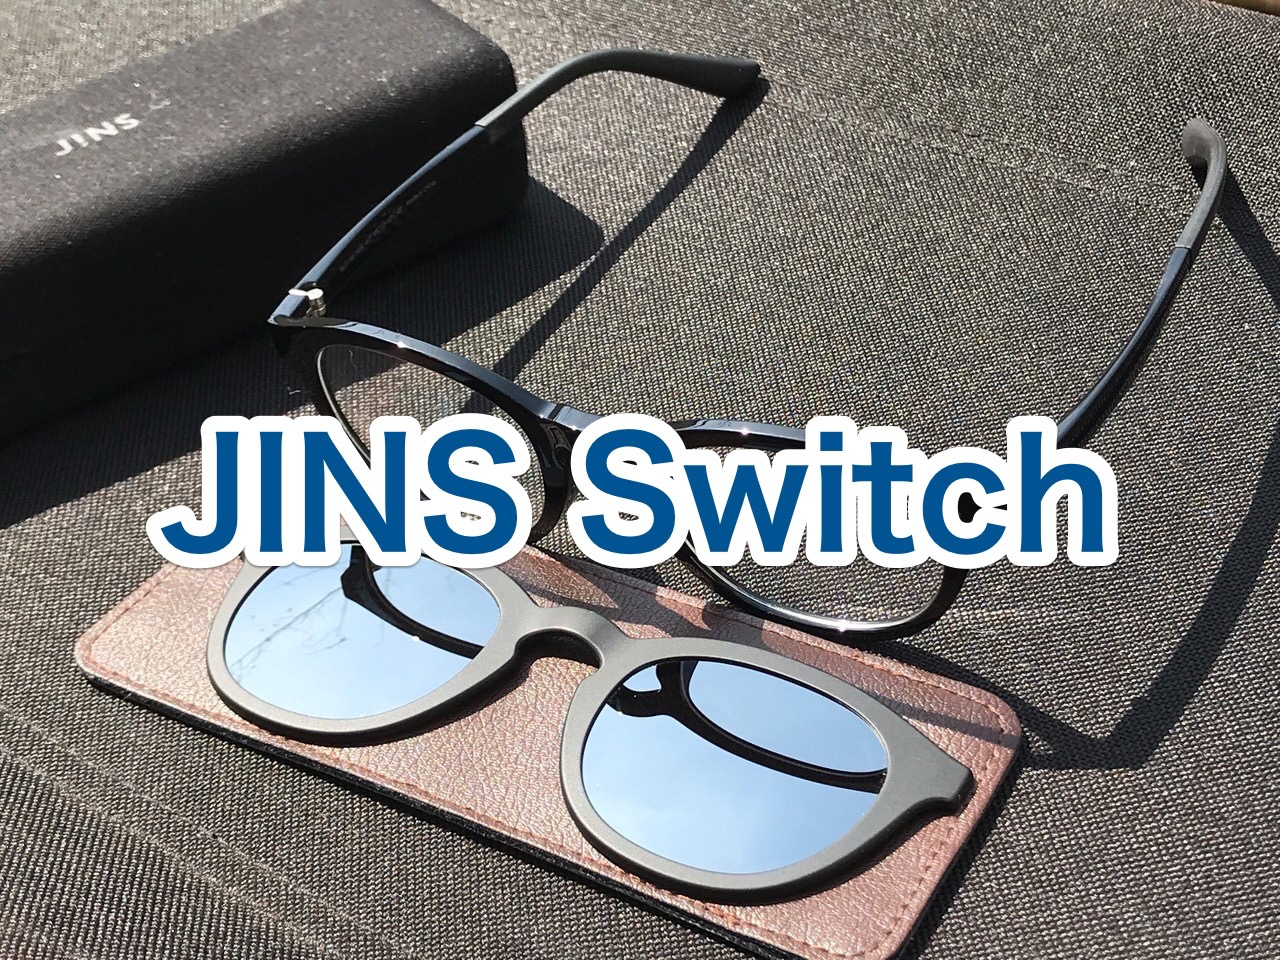 JINS Switch(ジンズスイッチ)